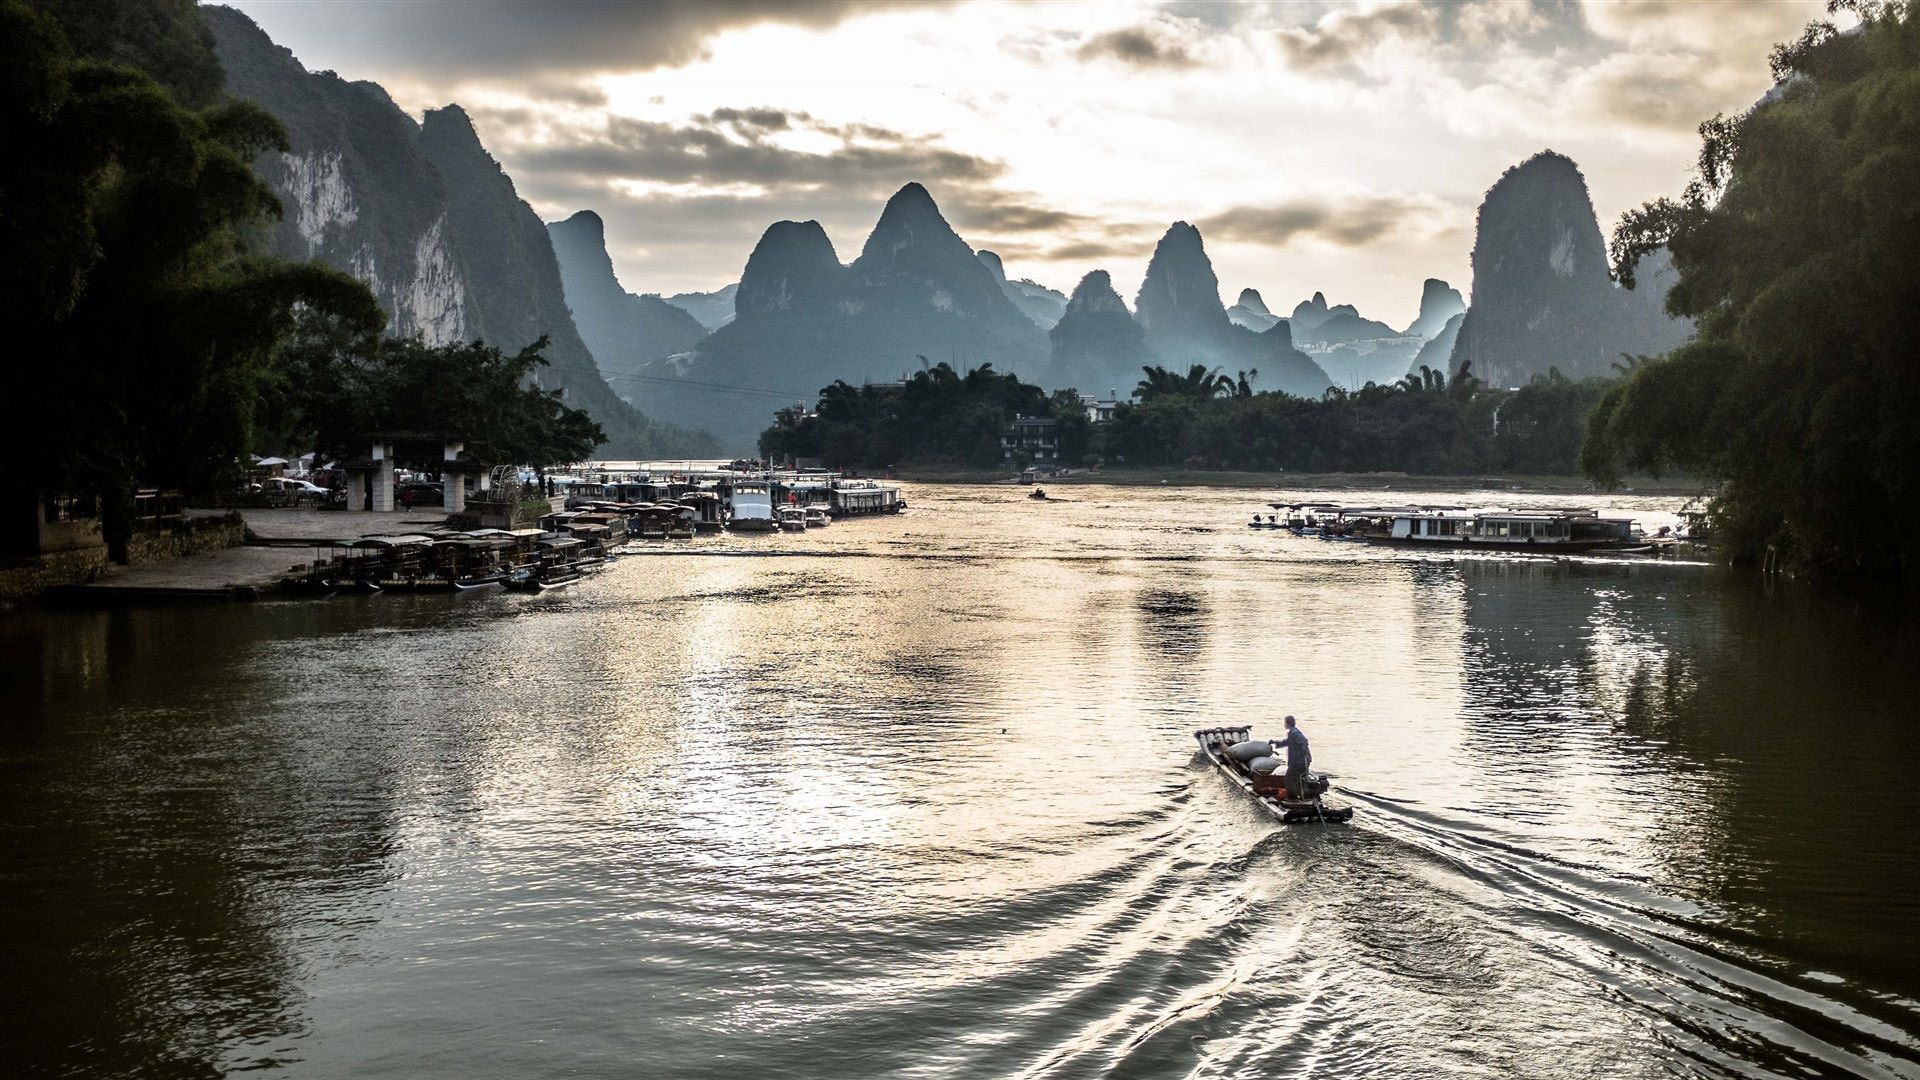 Boats on the Li River with mountains in the background near Yangshuo